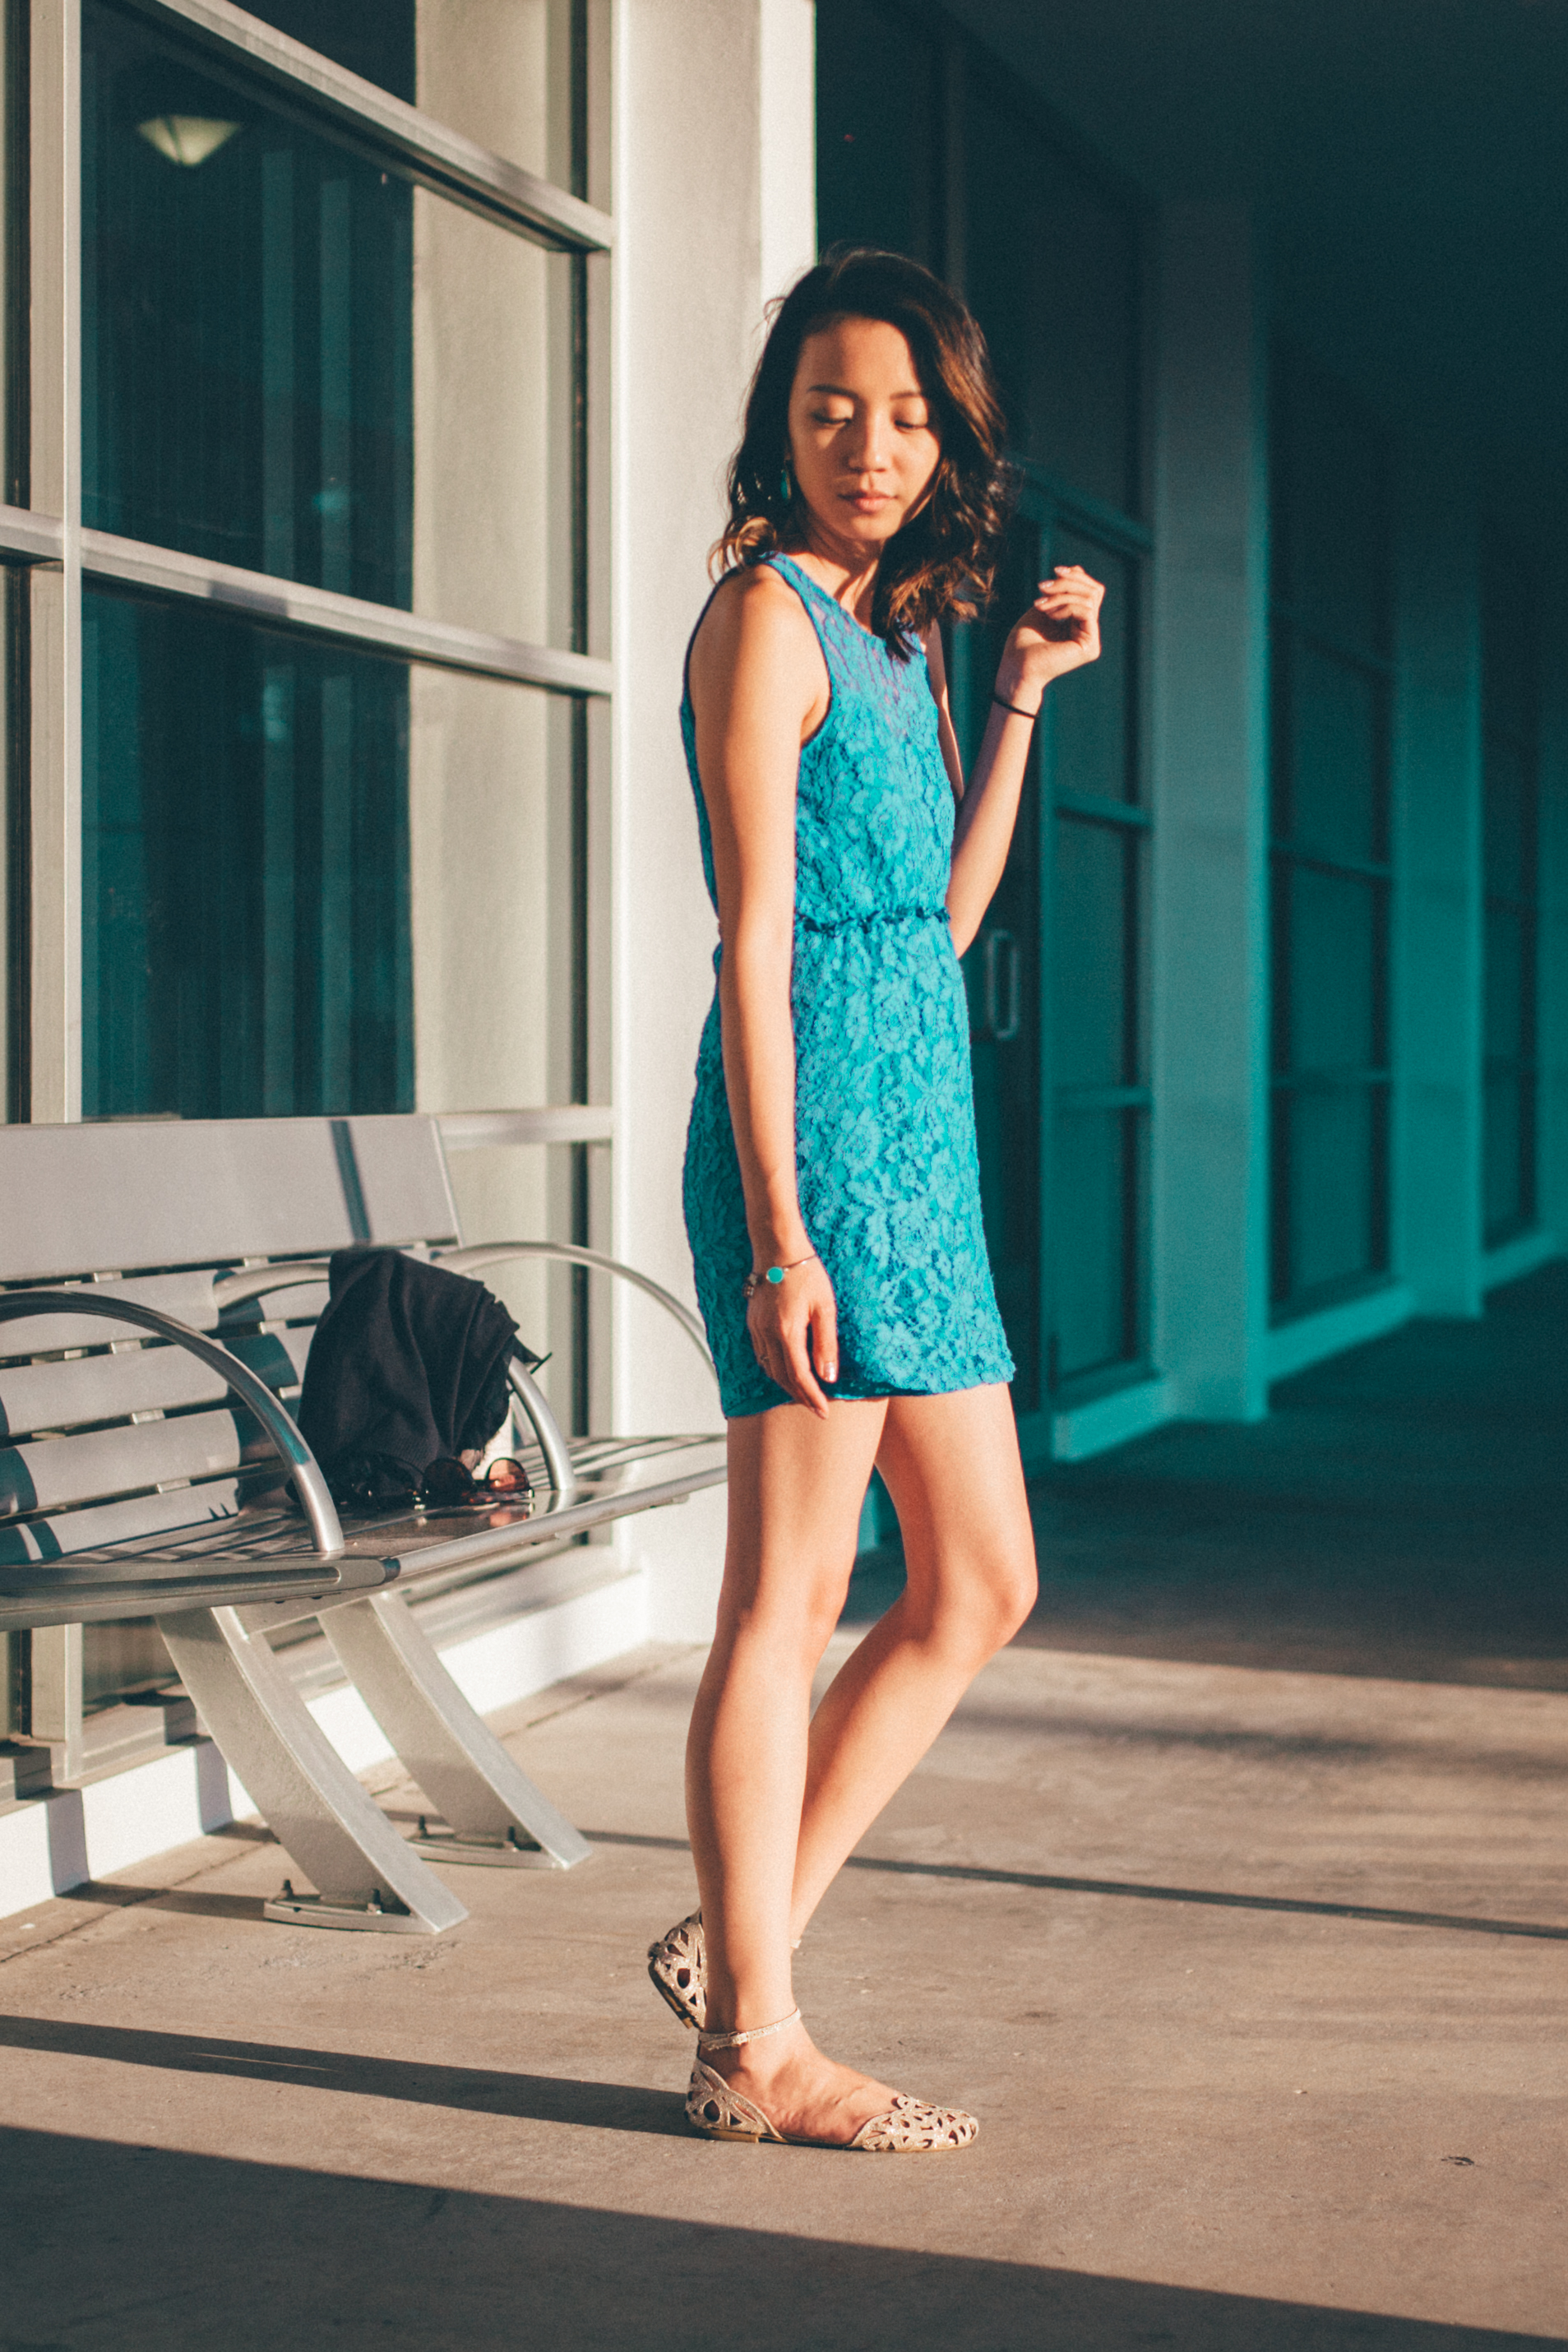 This Jenn Girl - Turquoise Takeover LUNG FORCE 5